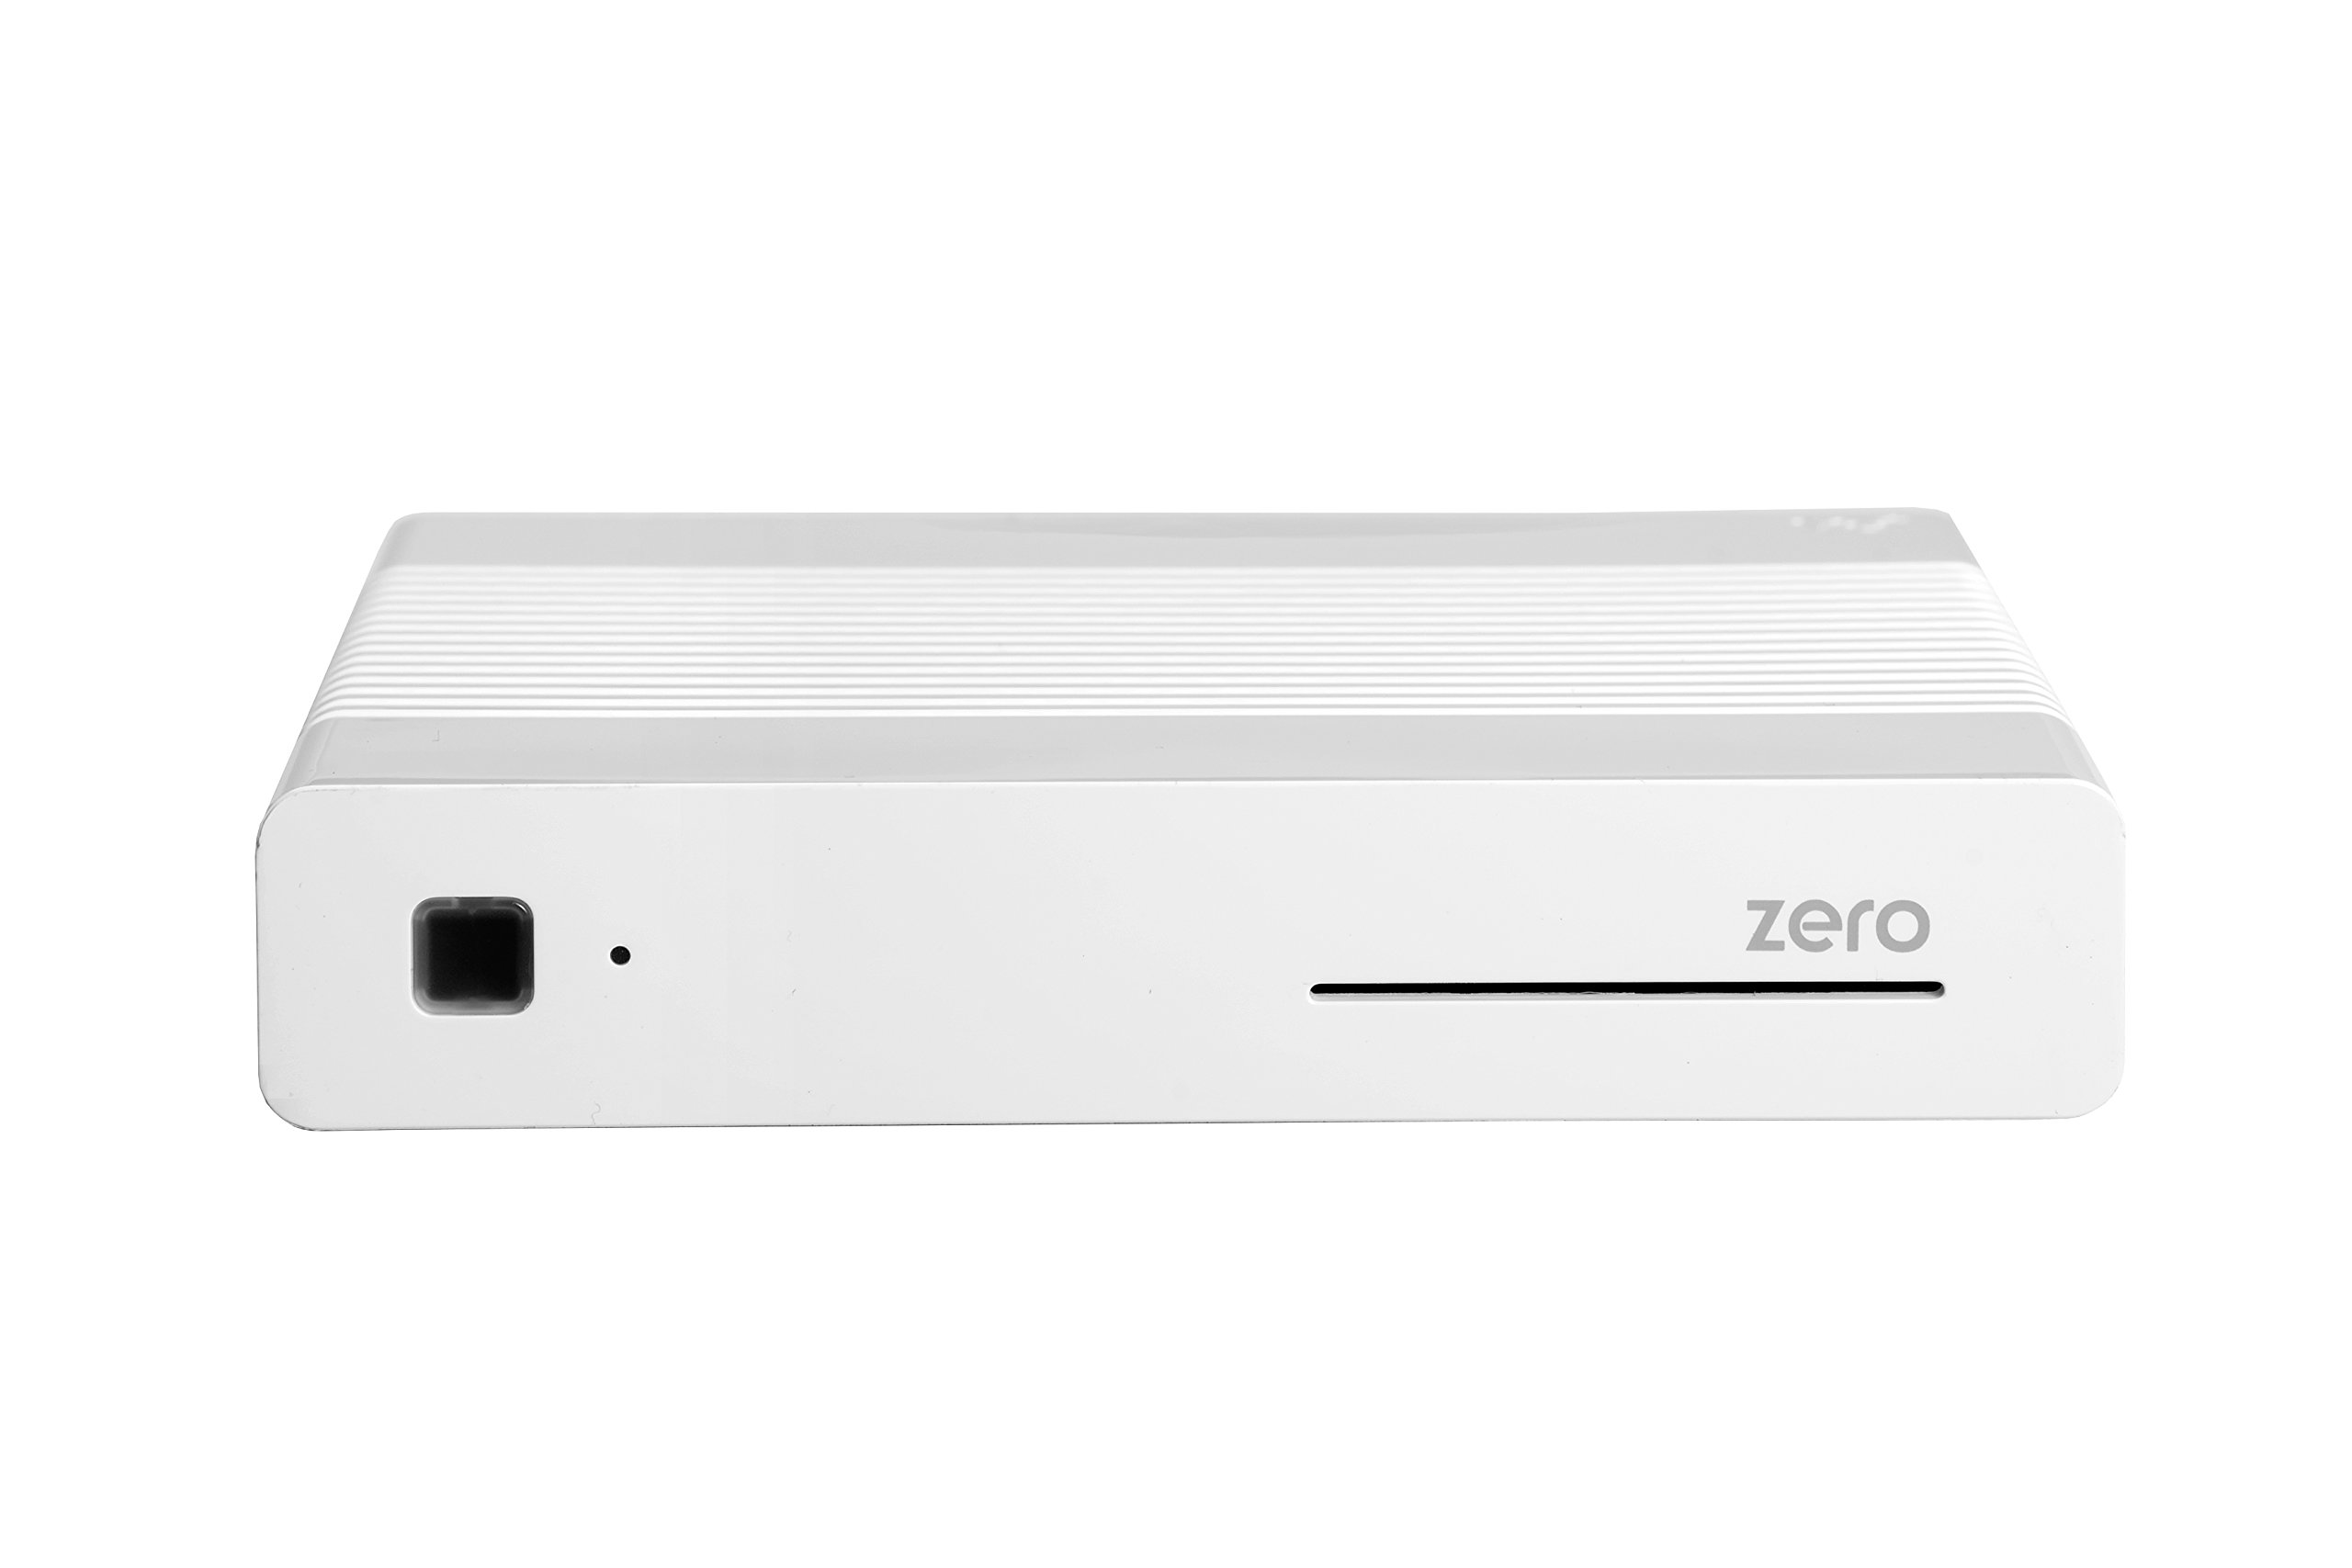 Vu+ Zero WE - Receptor de TV por satélite (Full HD, DVB-S2, HDMI), color blanco [Clase de eficiencia energética A to C]